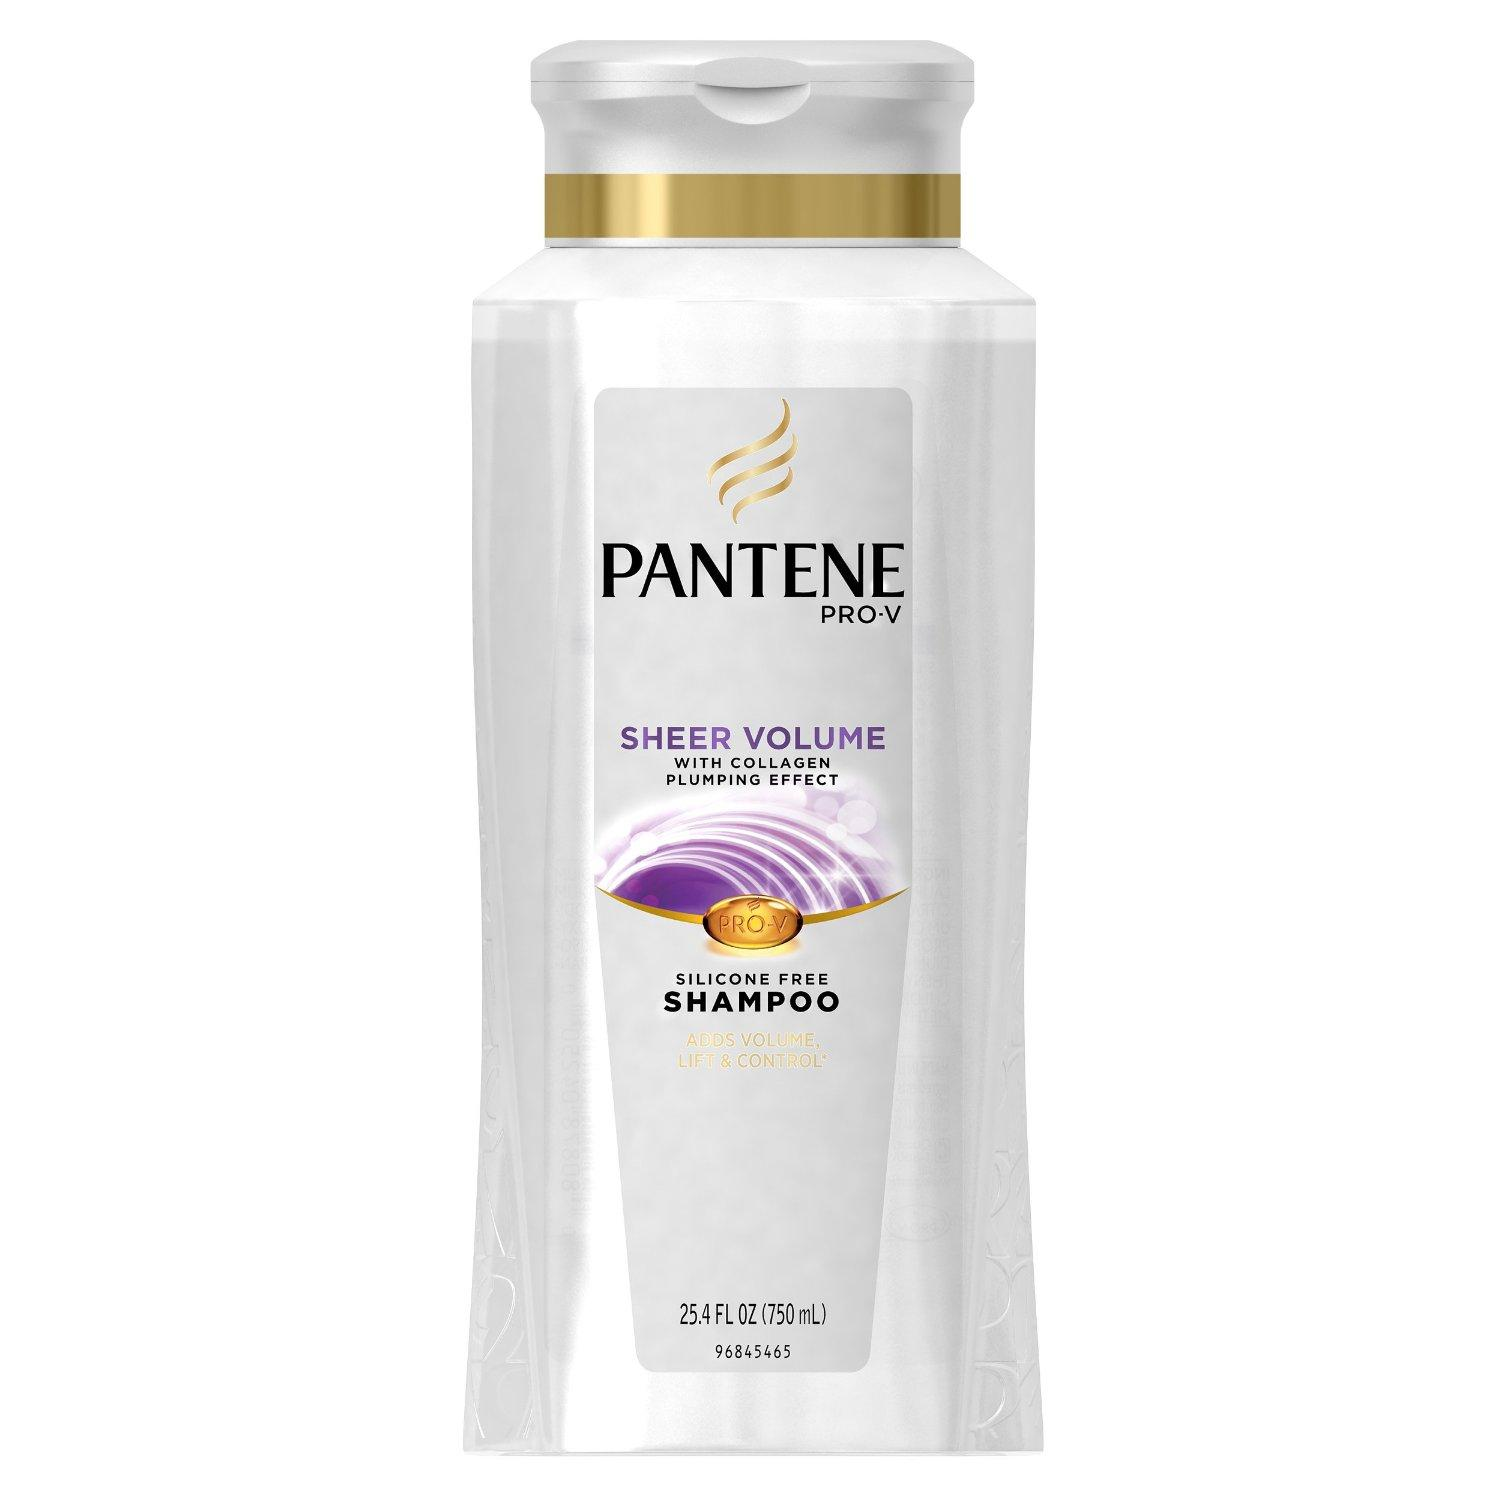 Pantene Pro-V Volume Shampoo,25.4 Fluid Ounce (Pack of 3)